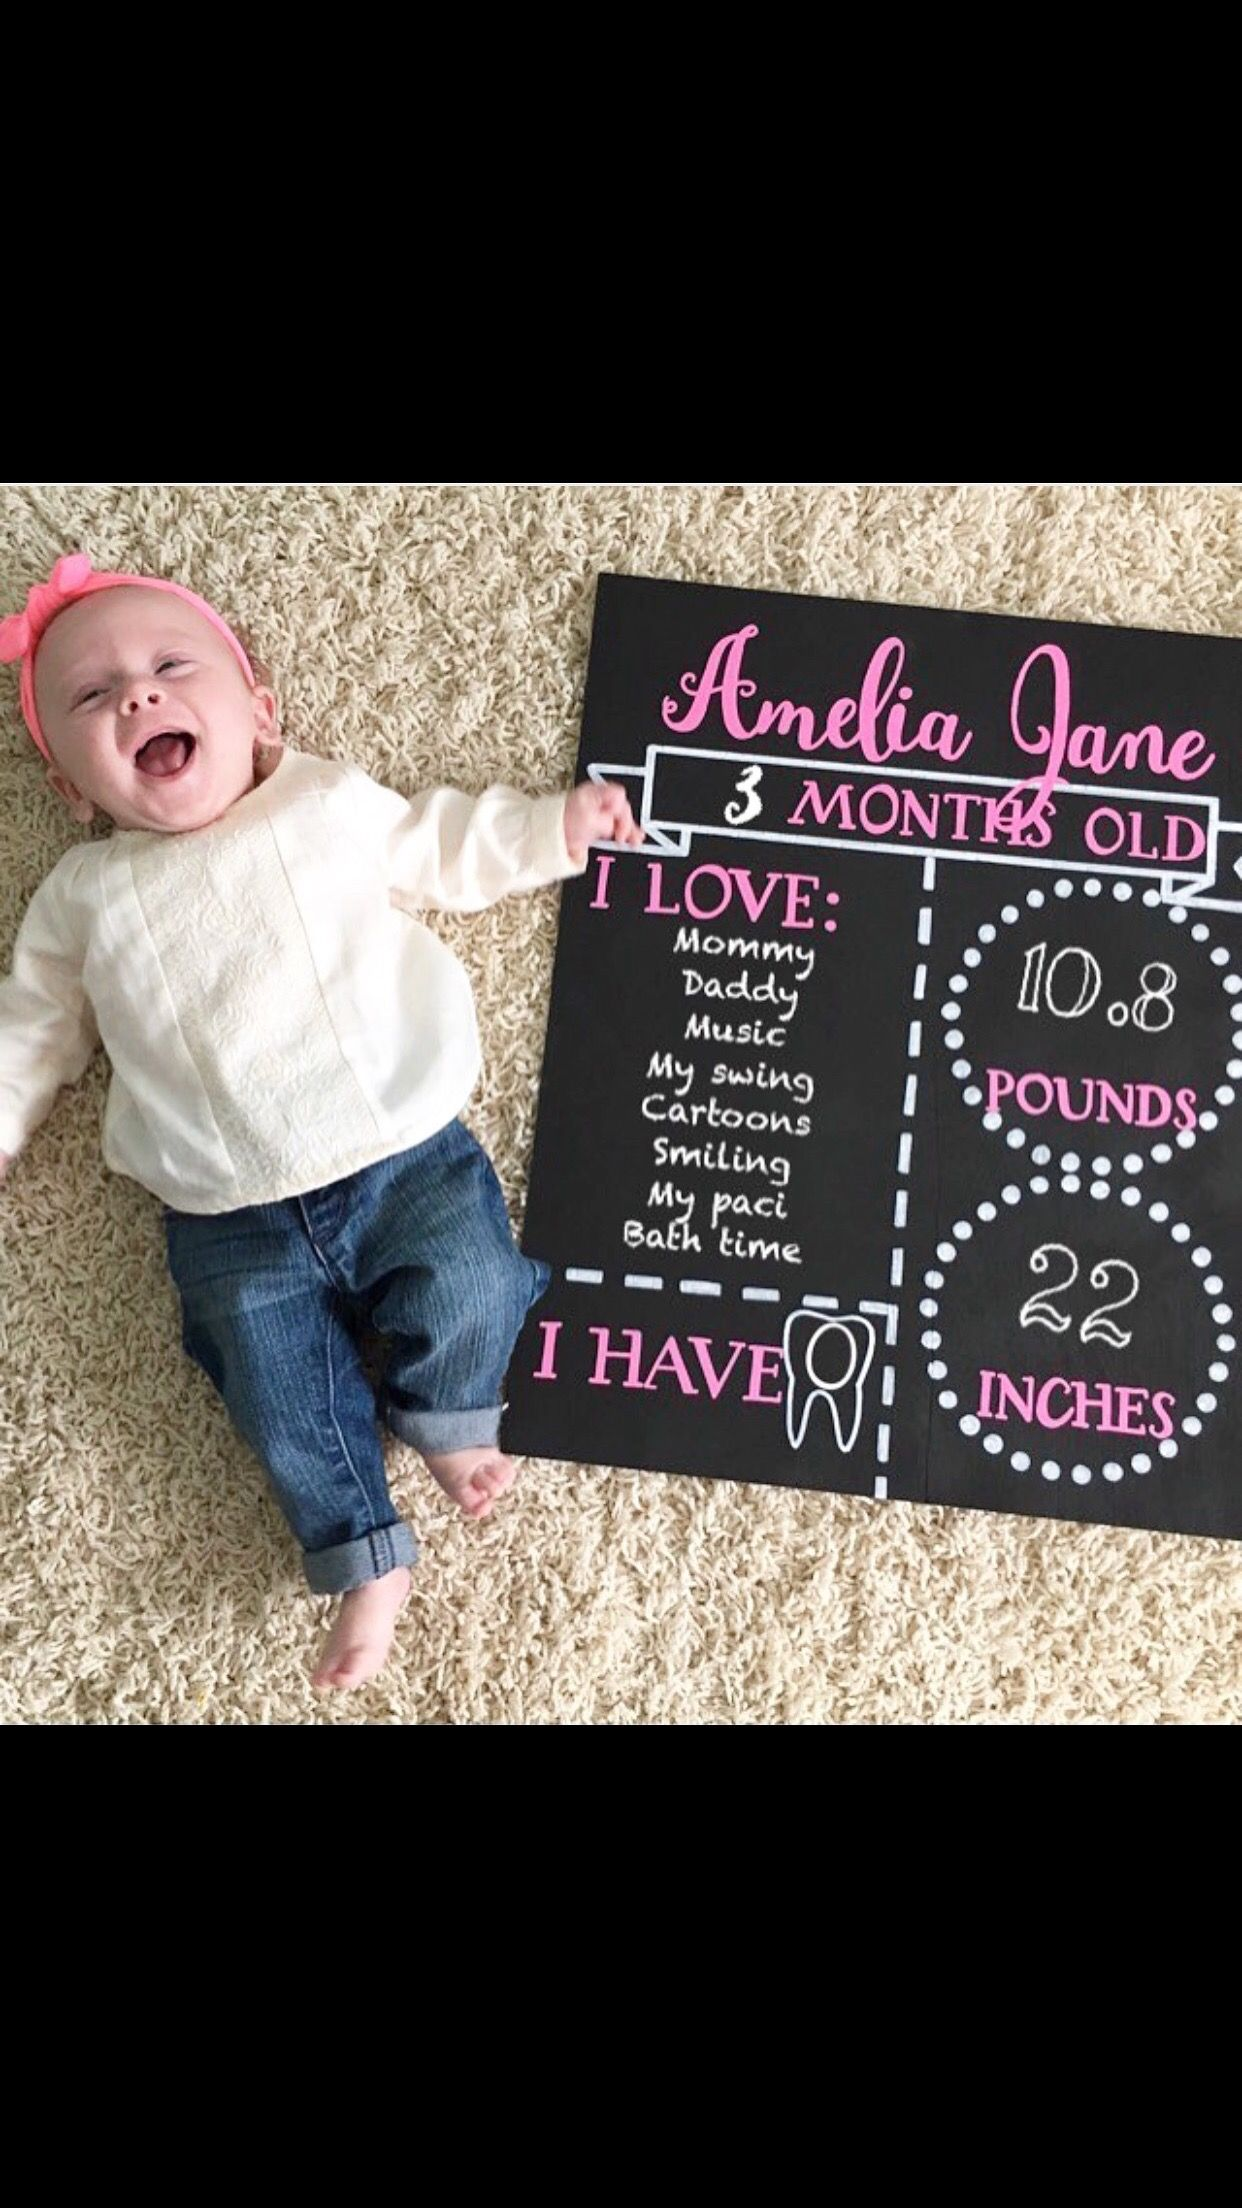 Infant height weight chart in photos picture text artwork infant height weight chart in photos picture text artwork little nugget photo editor nvjuhfo Image collections